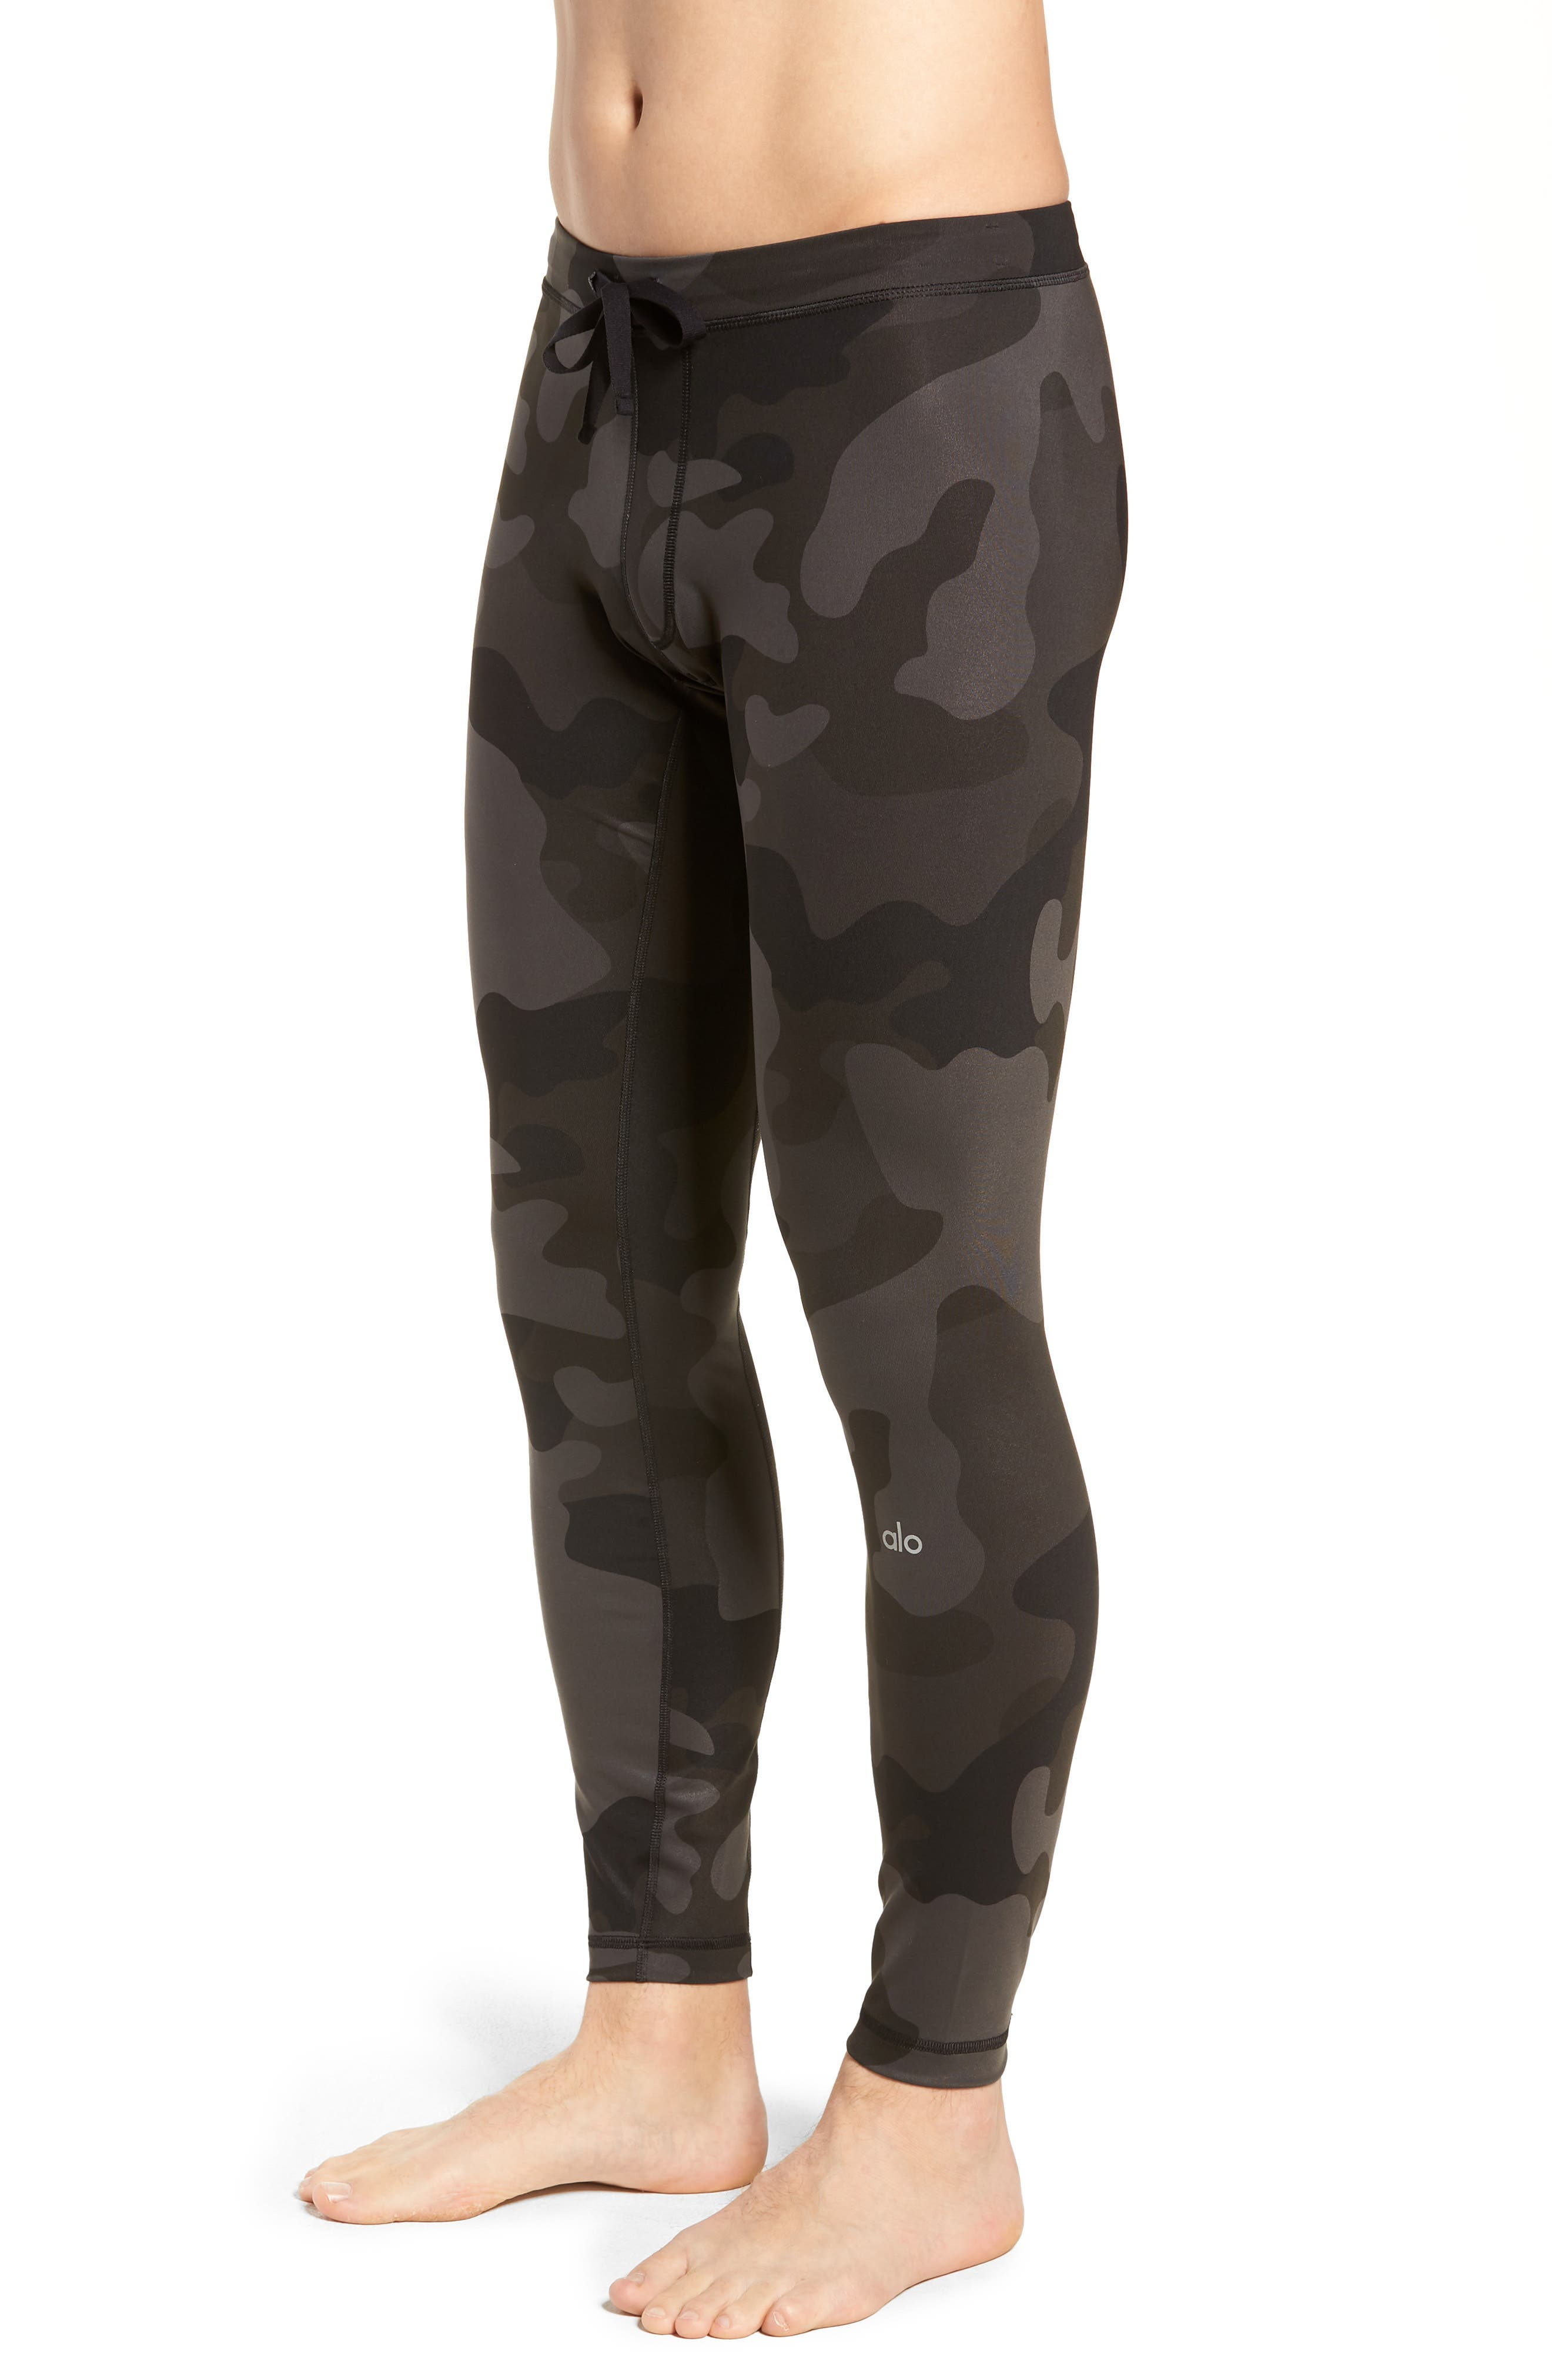 Warror Compression Tights,                             Alternate thumbnail 3, color,                             ONYX CAMO